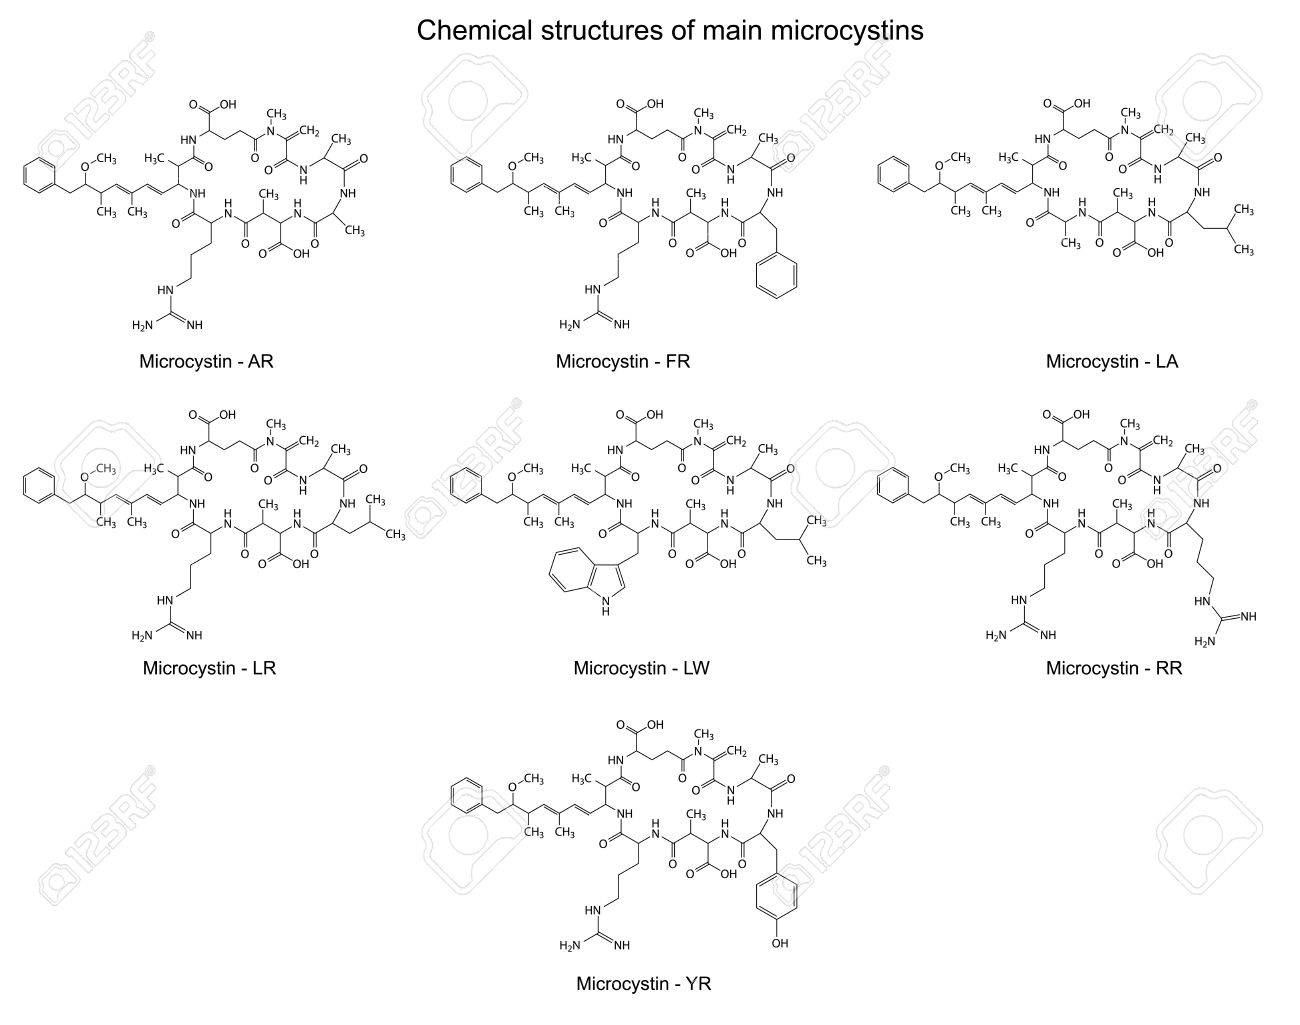 Chemical structural formulas of main microcystins - cyanotoxins, 2d illustration, skeletal style, isolated on white background - 31084371